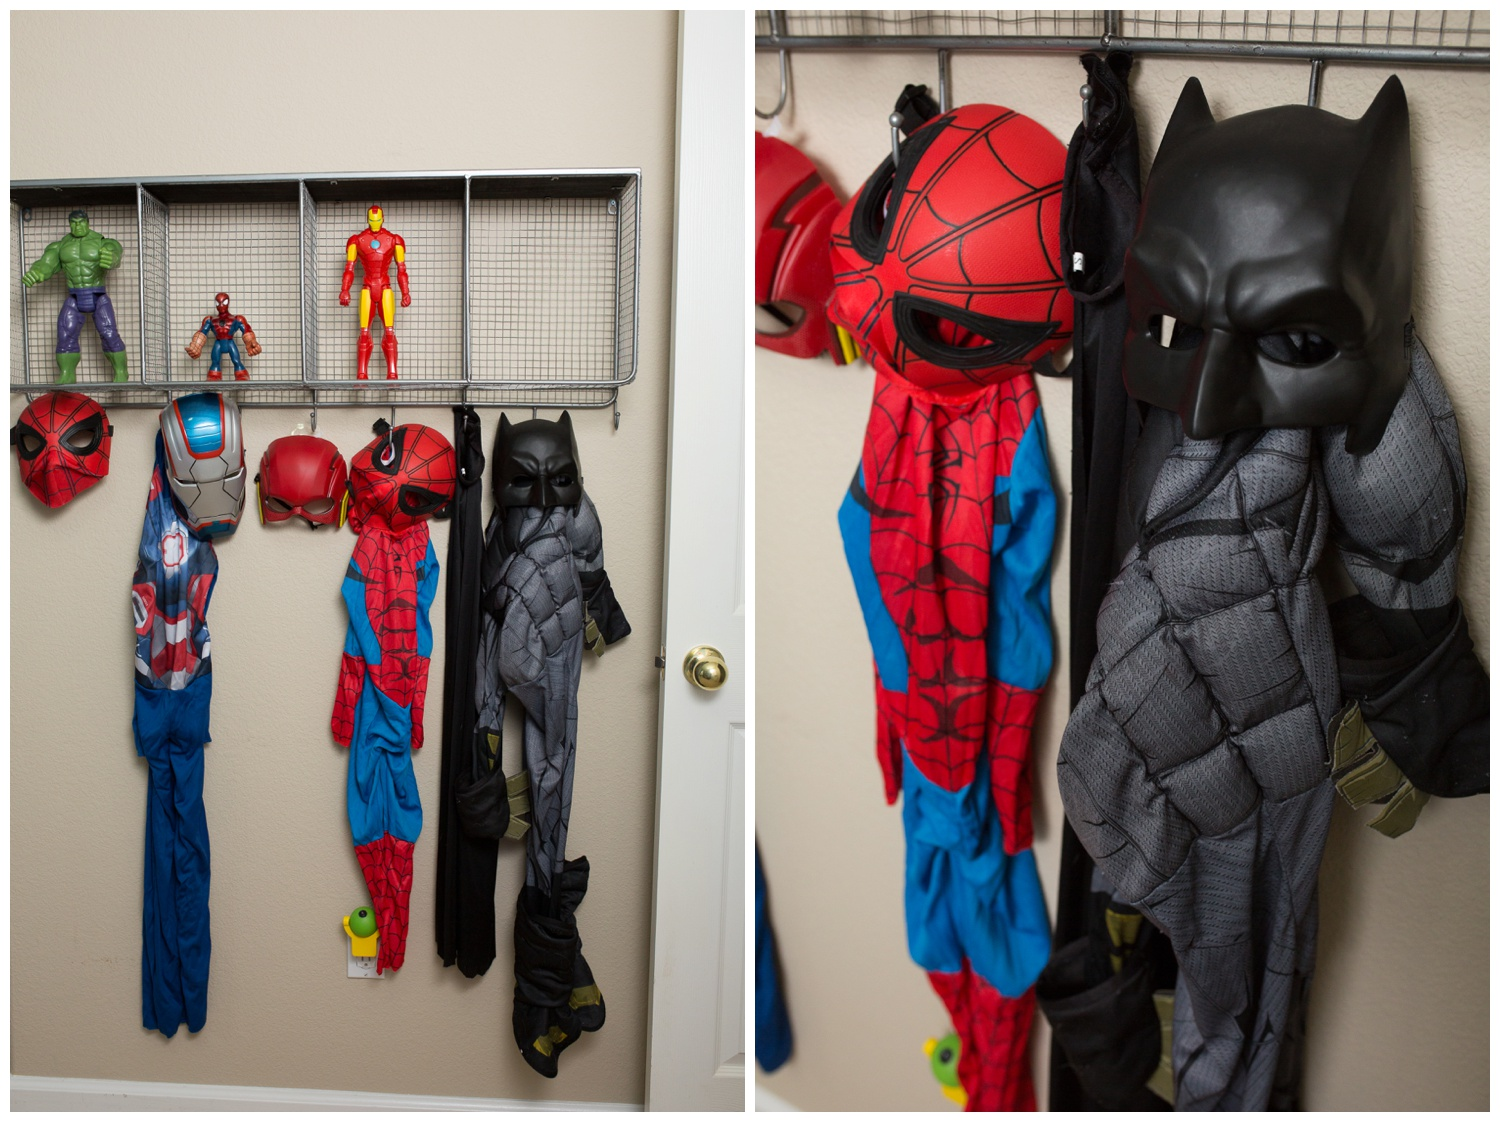 And BOOM! Just like that we are making progress. The superhero masks, costumes, and figures all came from Amazon except the tiny little Spiderman which he already had. We will have to work on getting him more action figures and he is already asking for more costumes!